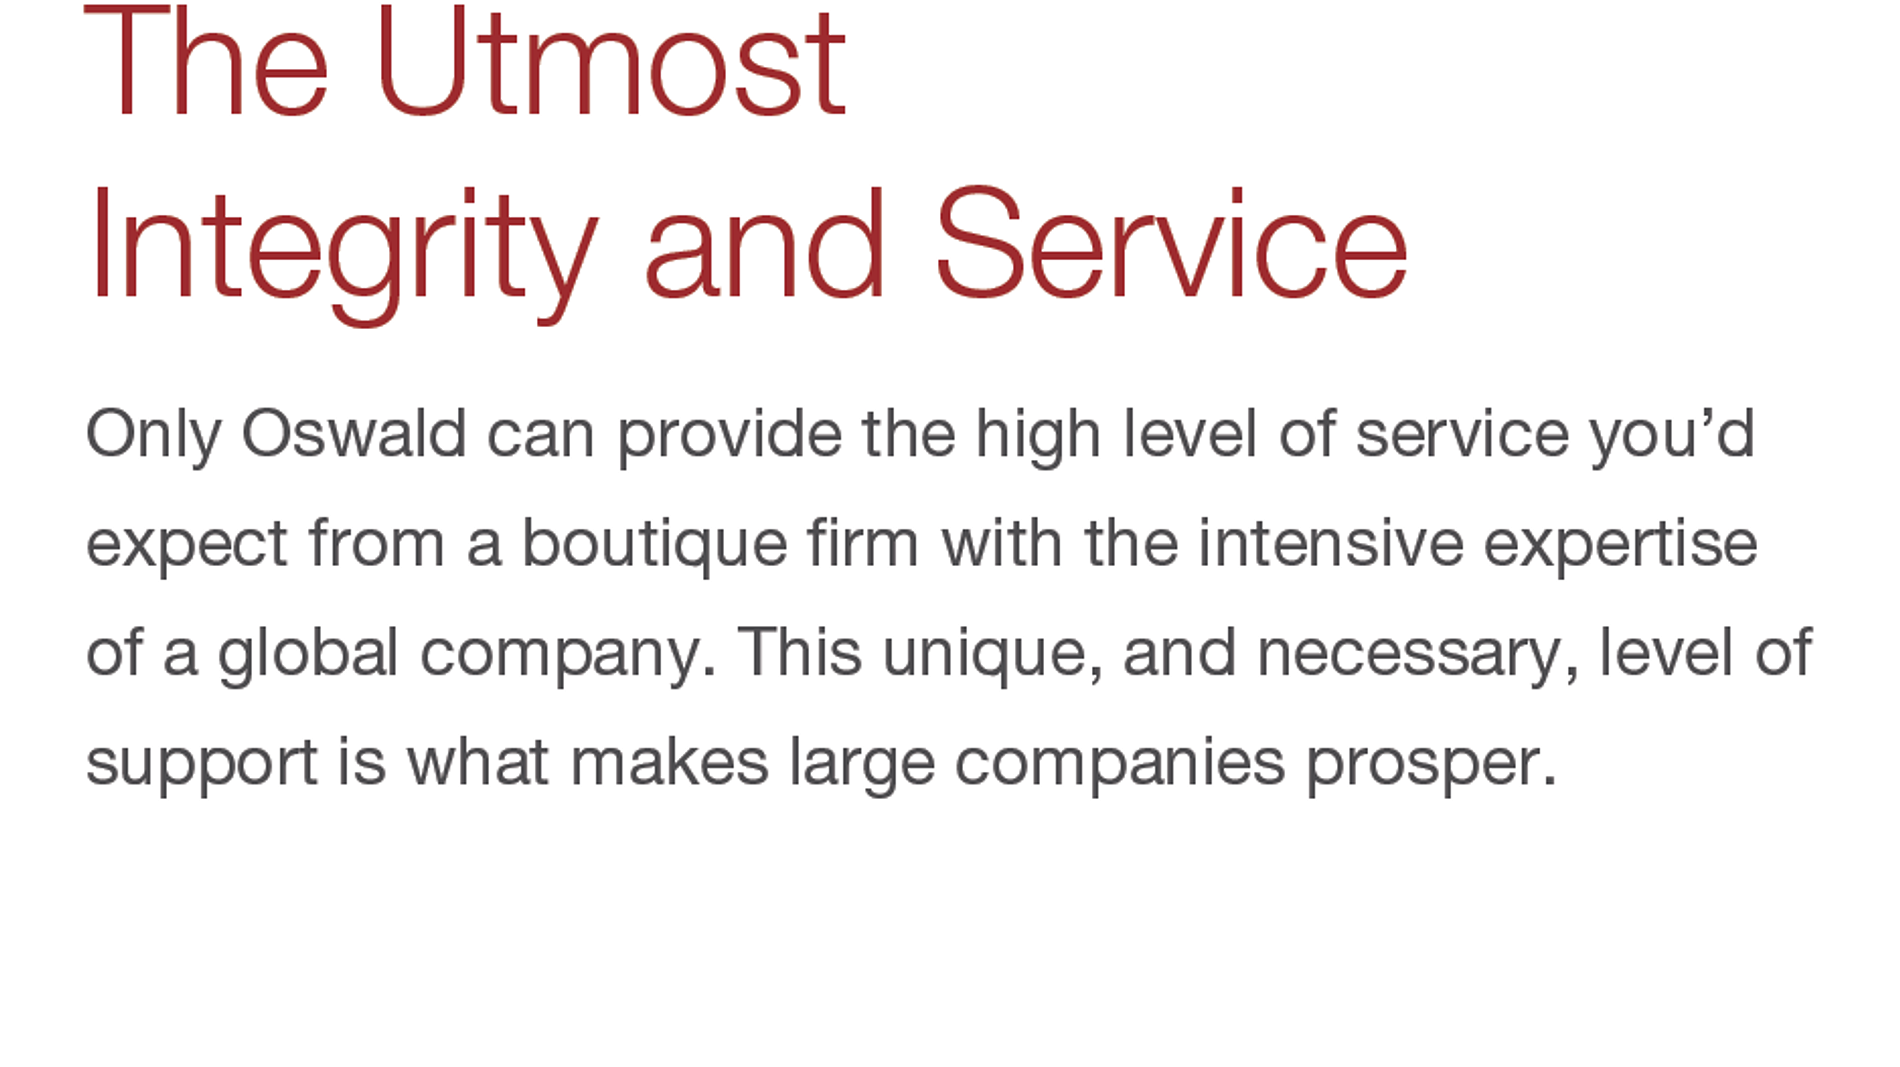 The Utmost Integrity and Service. Only Oswald can provide the high level of service you'd expect from a boutique firm with the intensive expertise of a global company. This unique, and necessary, level of support is what makes large companies prosper.